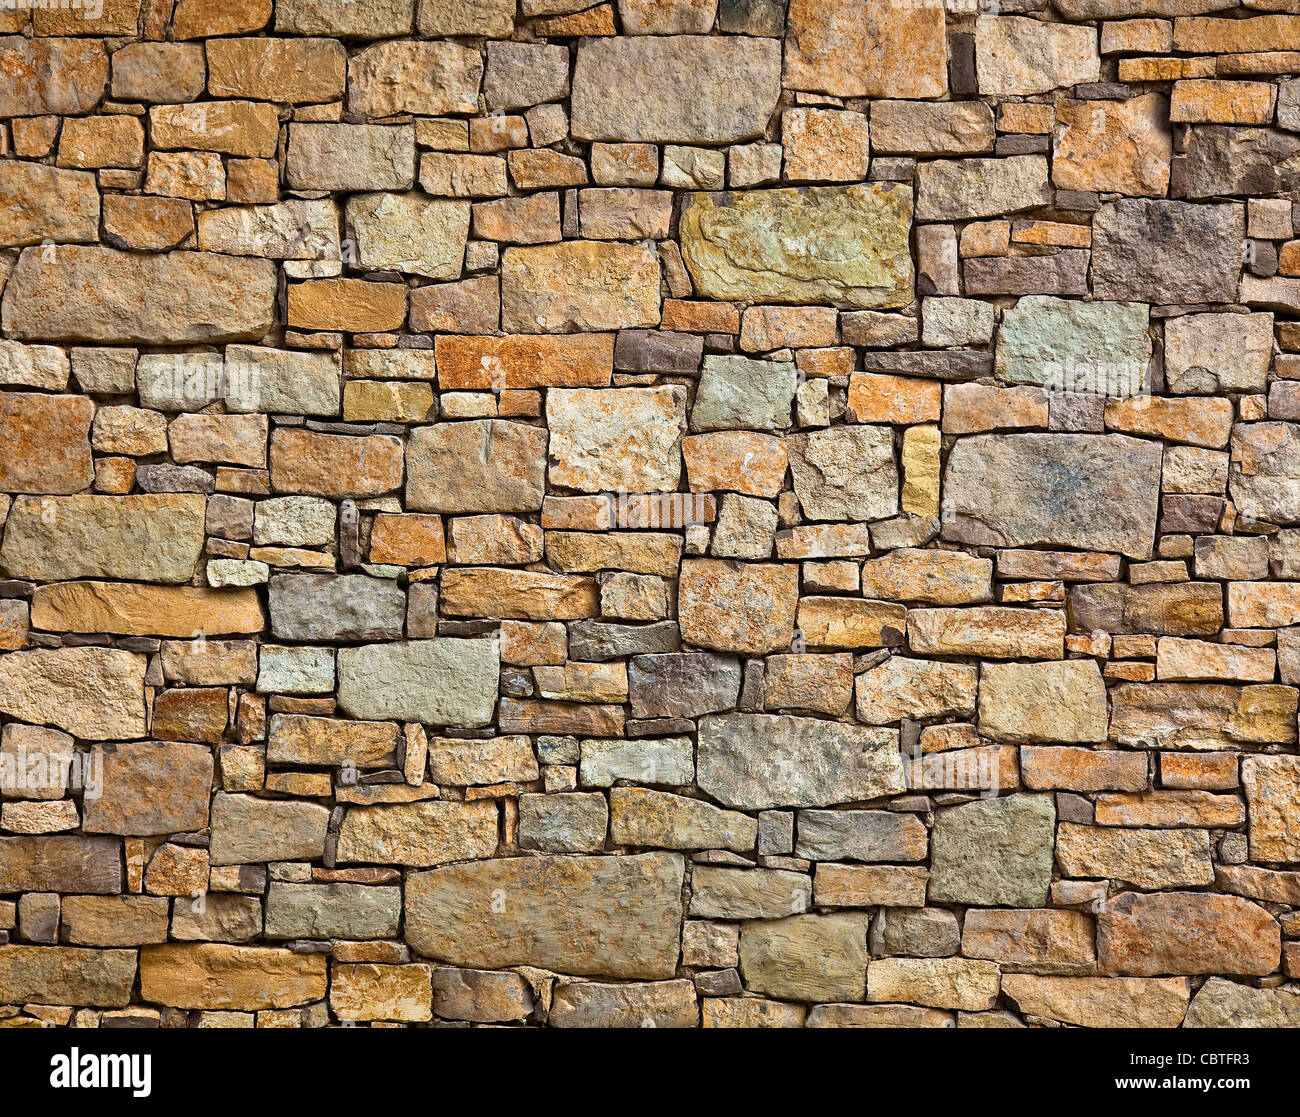 stone wall texture - Stock Image